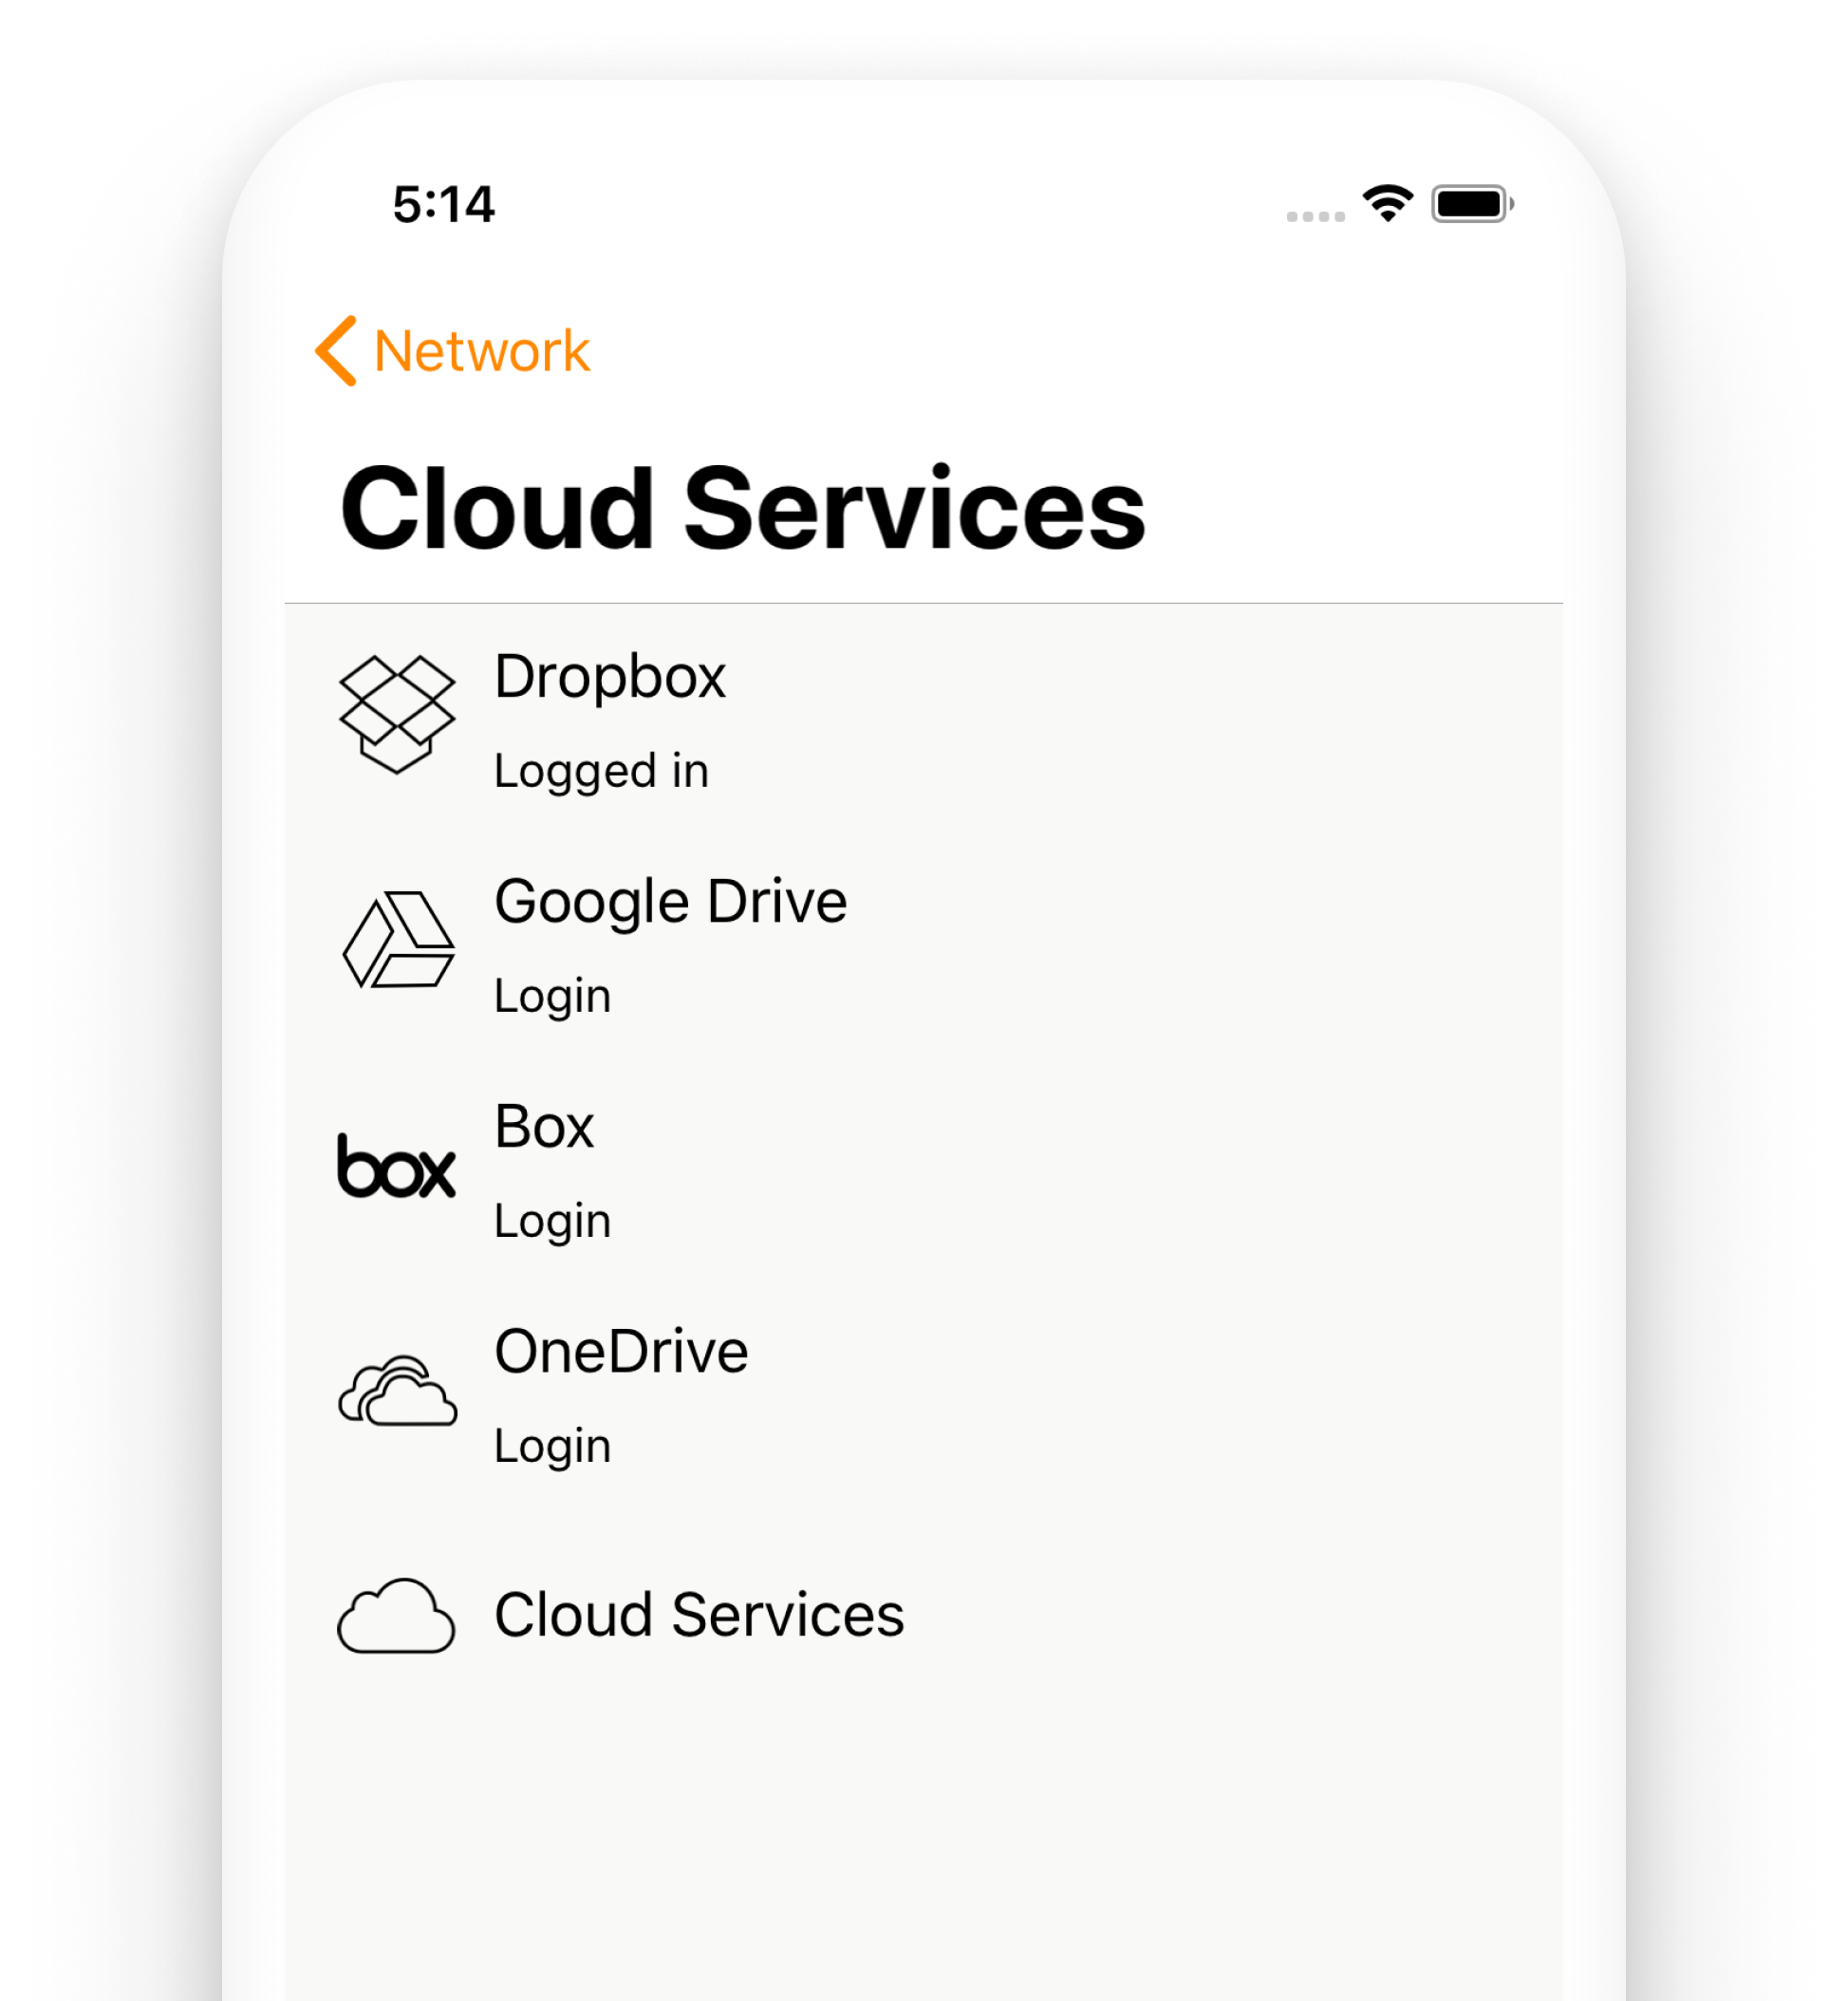 vlc-ios/Images.xcassets/FirstSteps/Cloud/whiteCloudiPhone.imageset/iPhone X (White)@3x.png